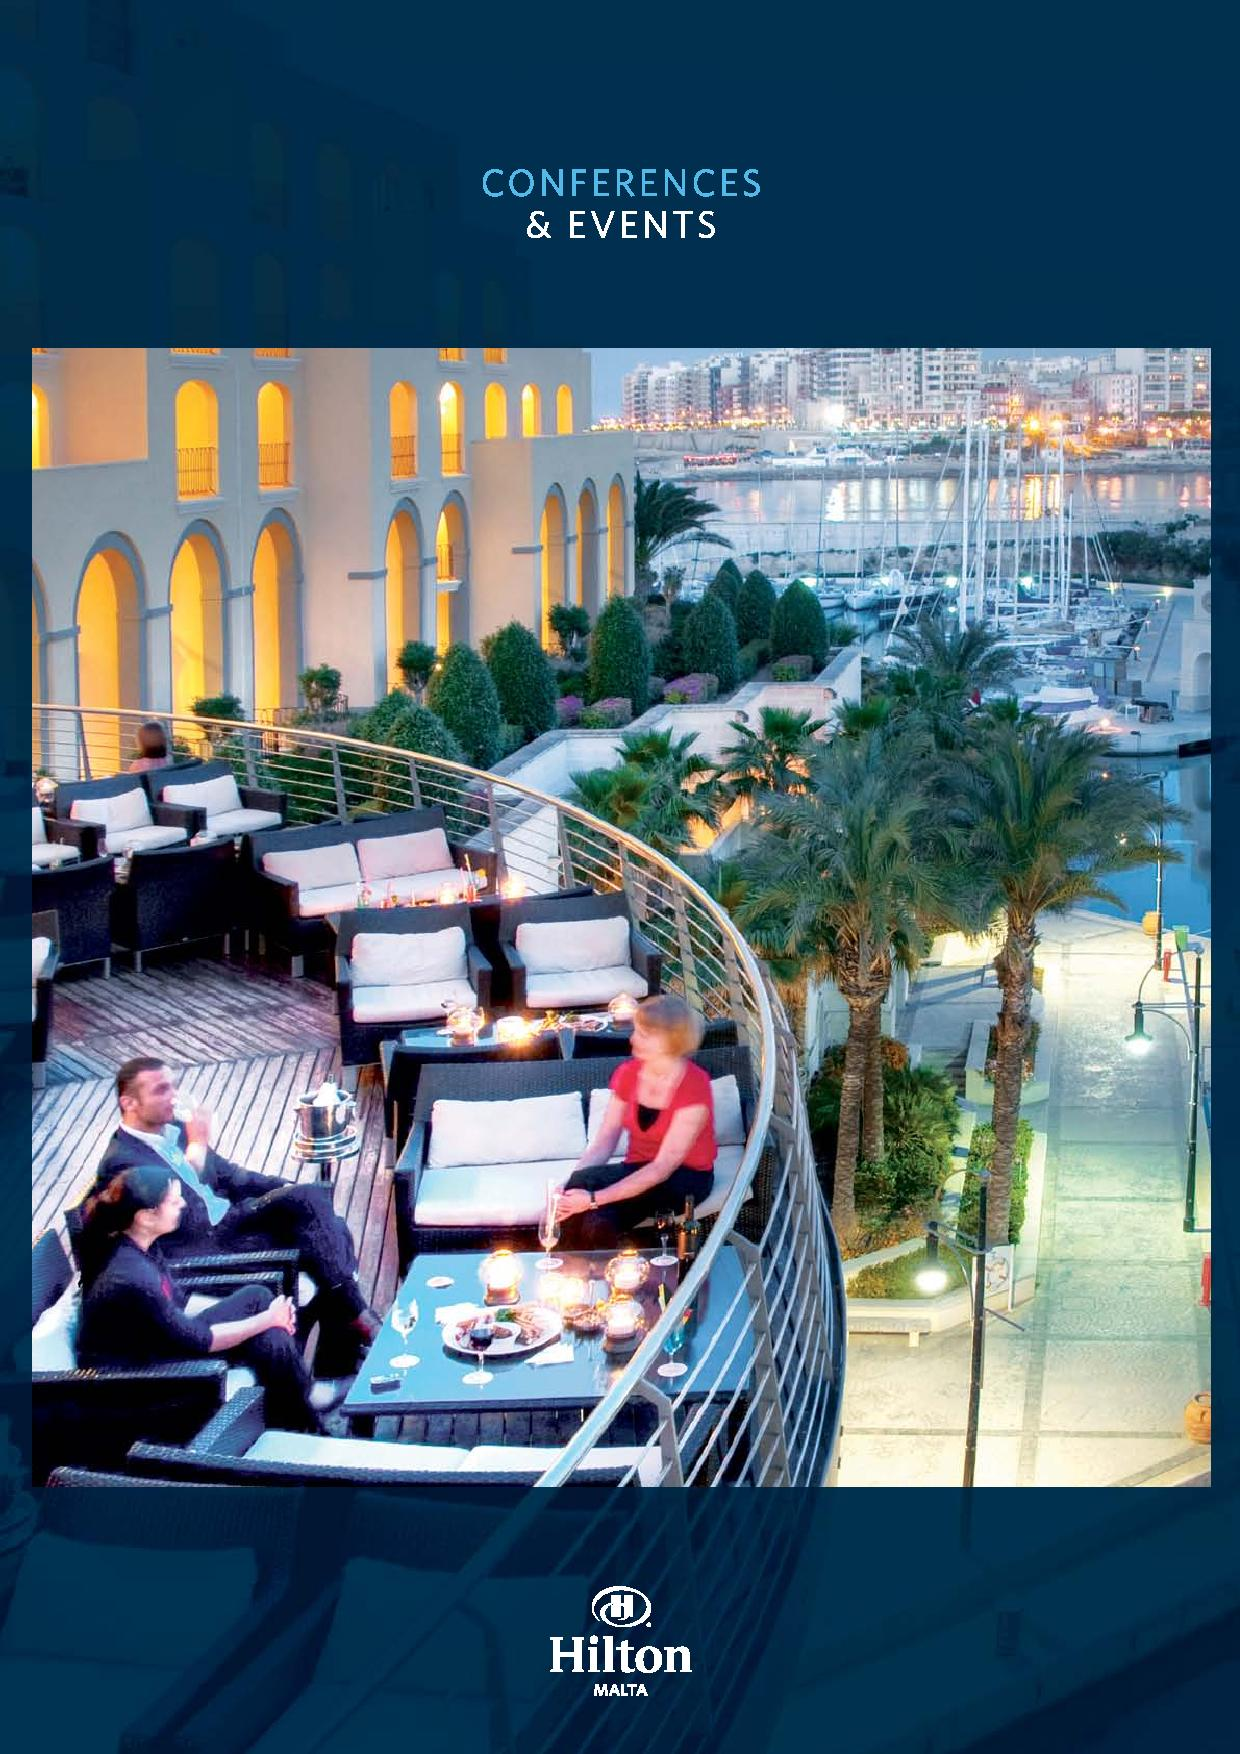 Hilton Conferences and Events Brouchure